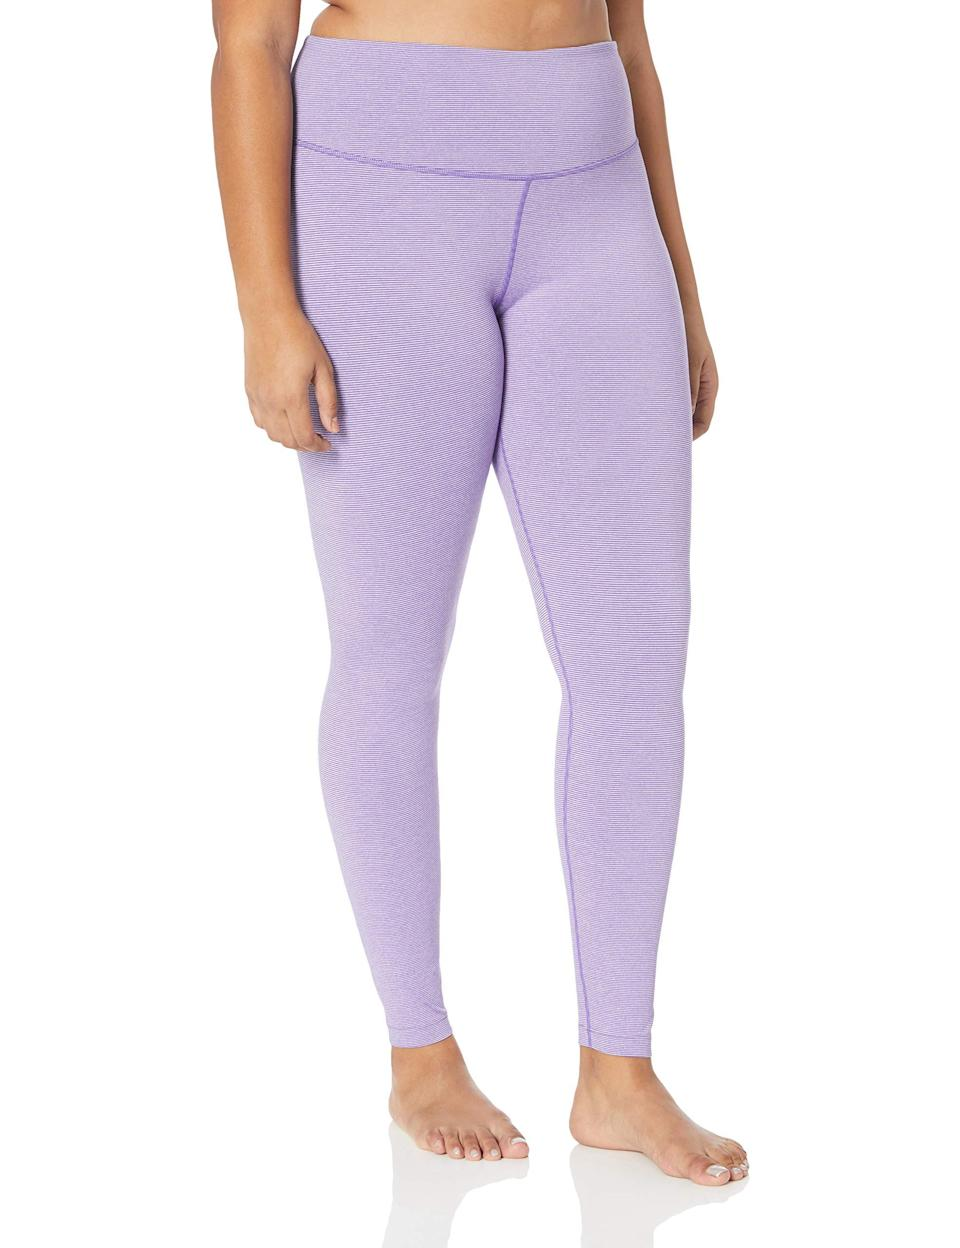 "<br><br><strong>Core 10</strong> Spectrum Yoga High Waist 7/8 Crop Legging, $, available at <a href=""https://amzn.to/34WcKzn"" rel=""nofollow noopener"" target=""_blank"" data-ylk=""slk:Amazon"" class=""link rapid-noclick-resp"">Amazon</a>"